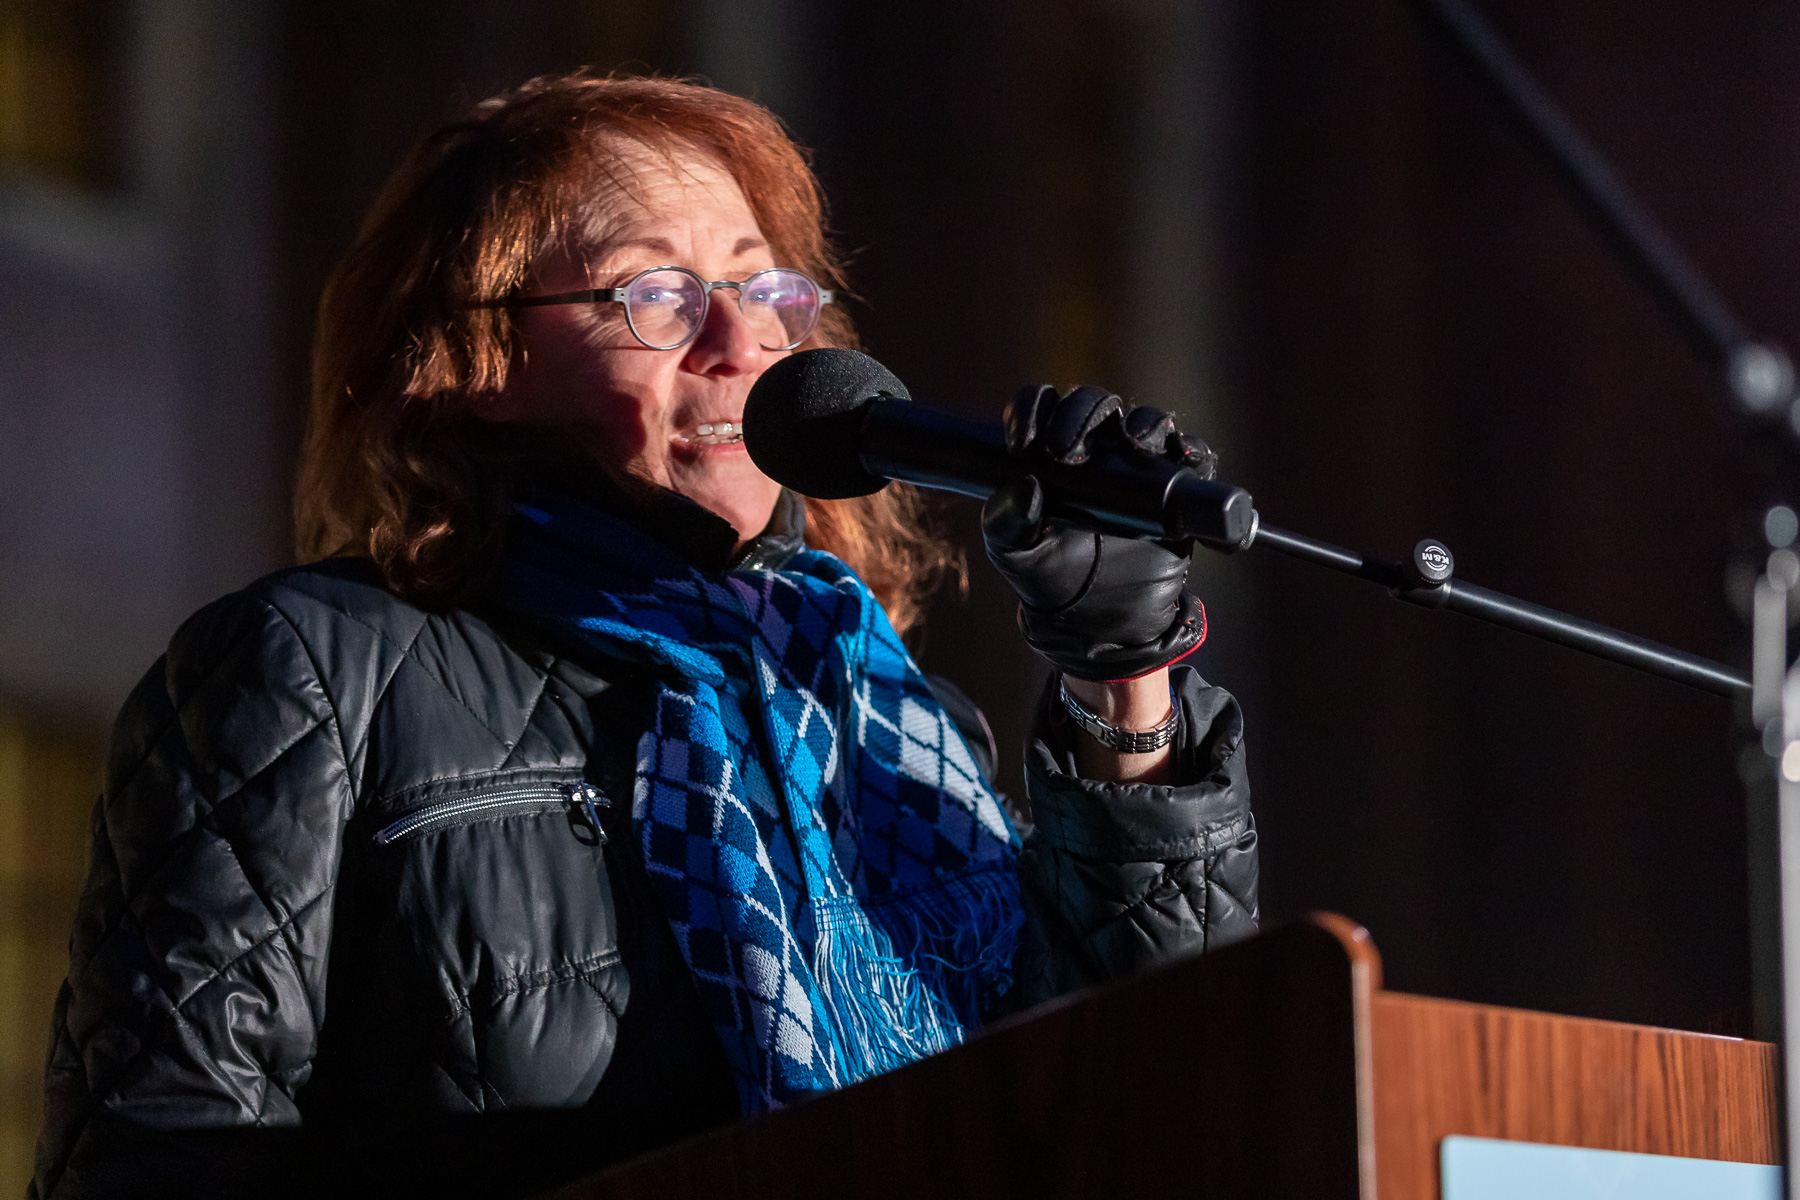 Michele Smith, alderman of Chicago's 43rd Ward, also spoke at the ceremony. (DePaul University/Jeff Carrion)